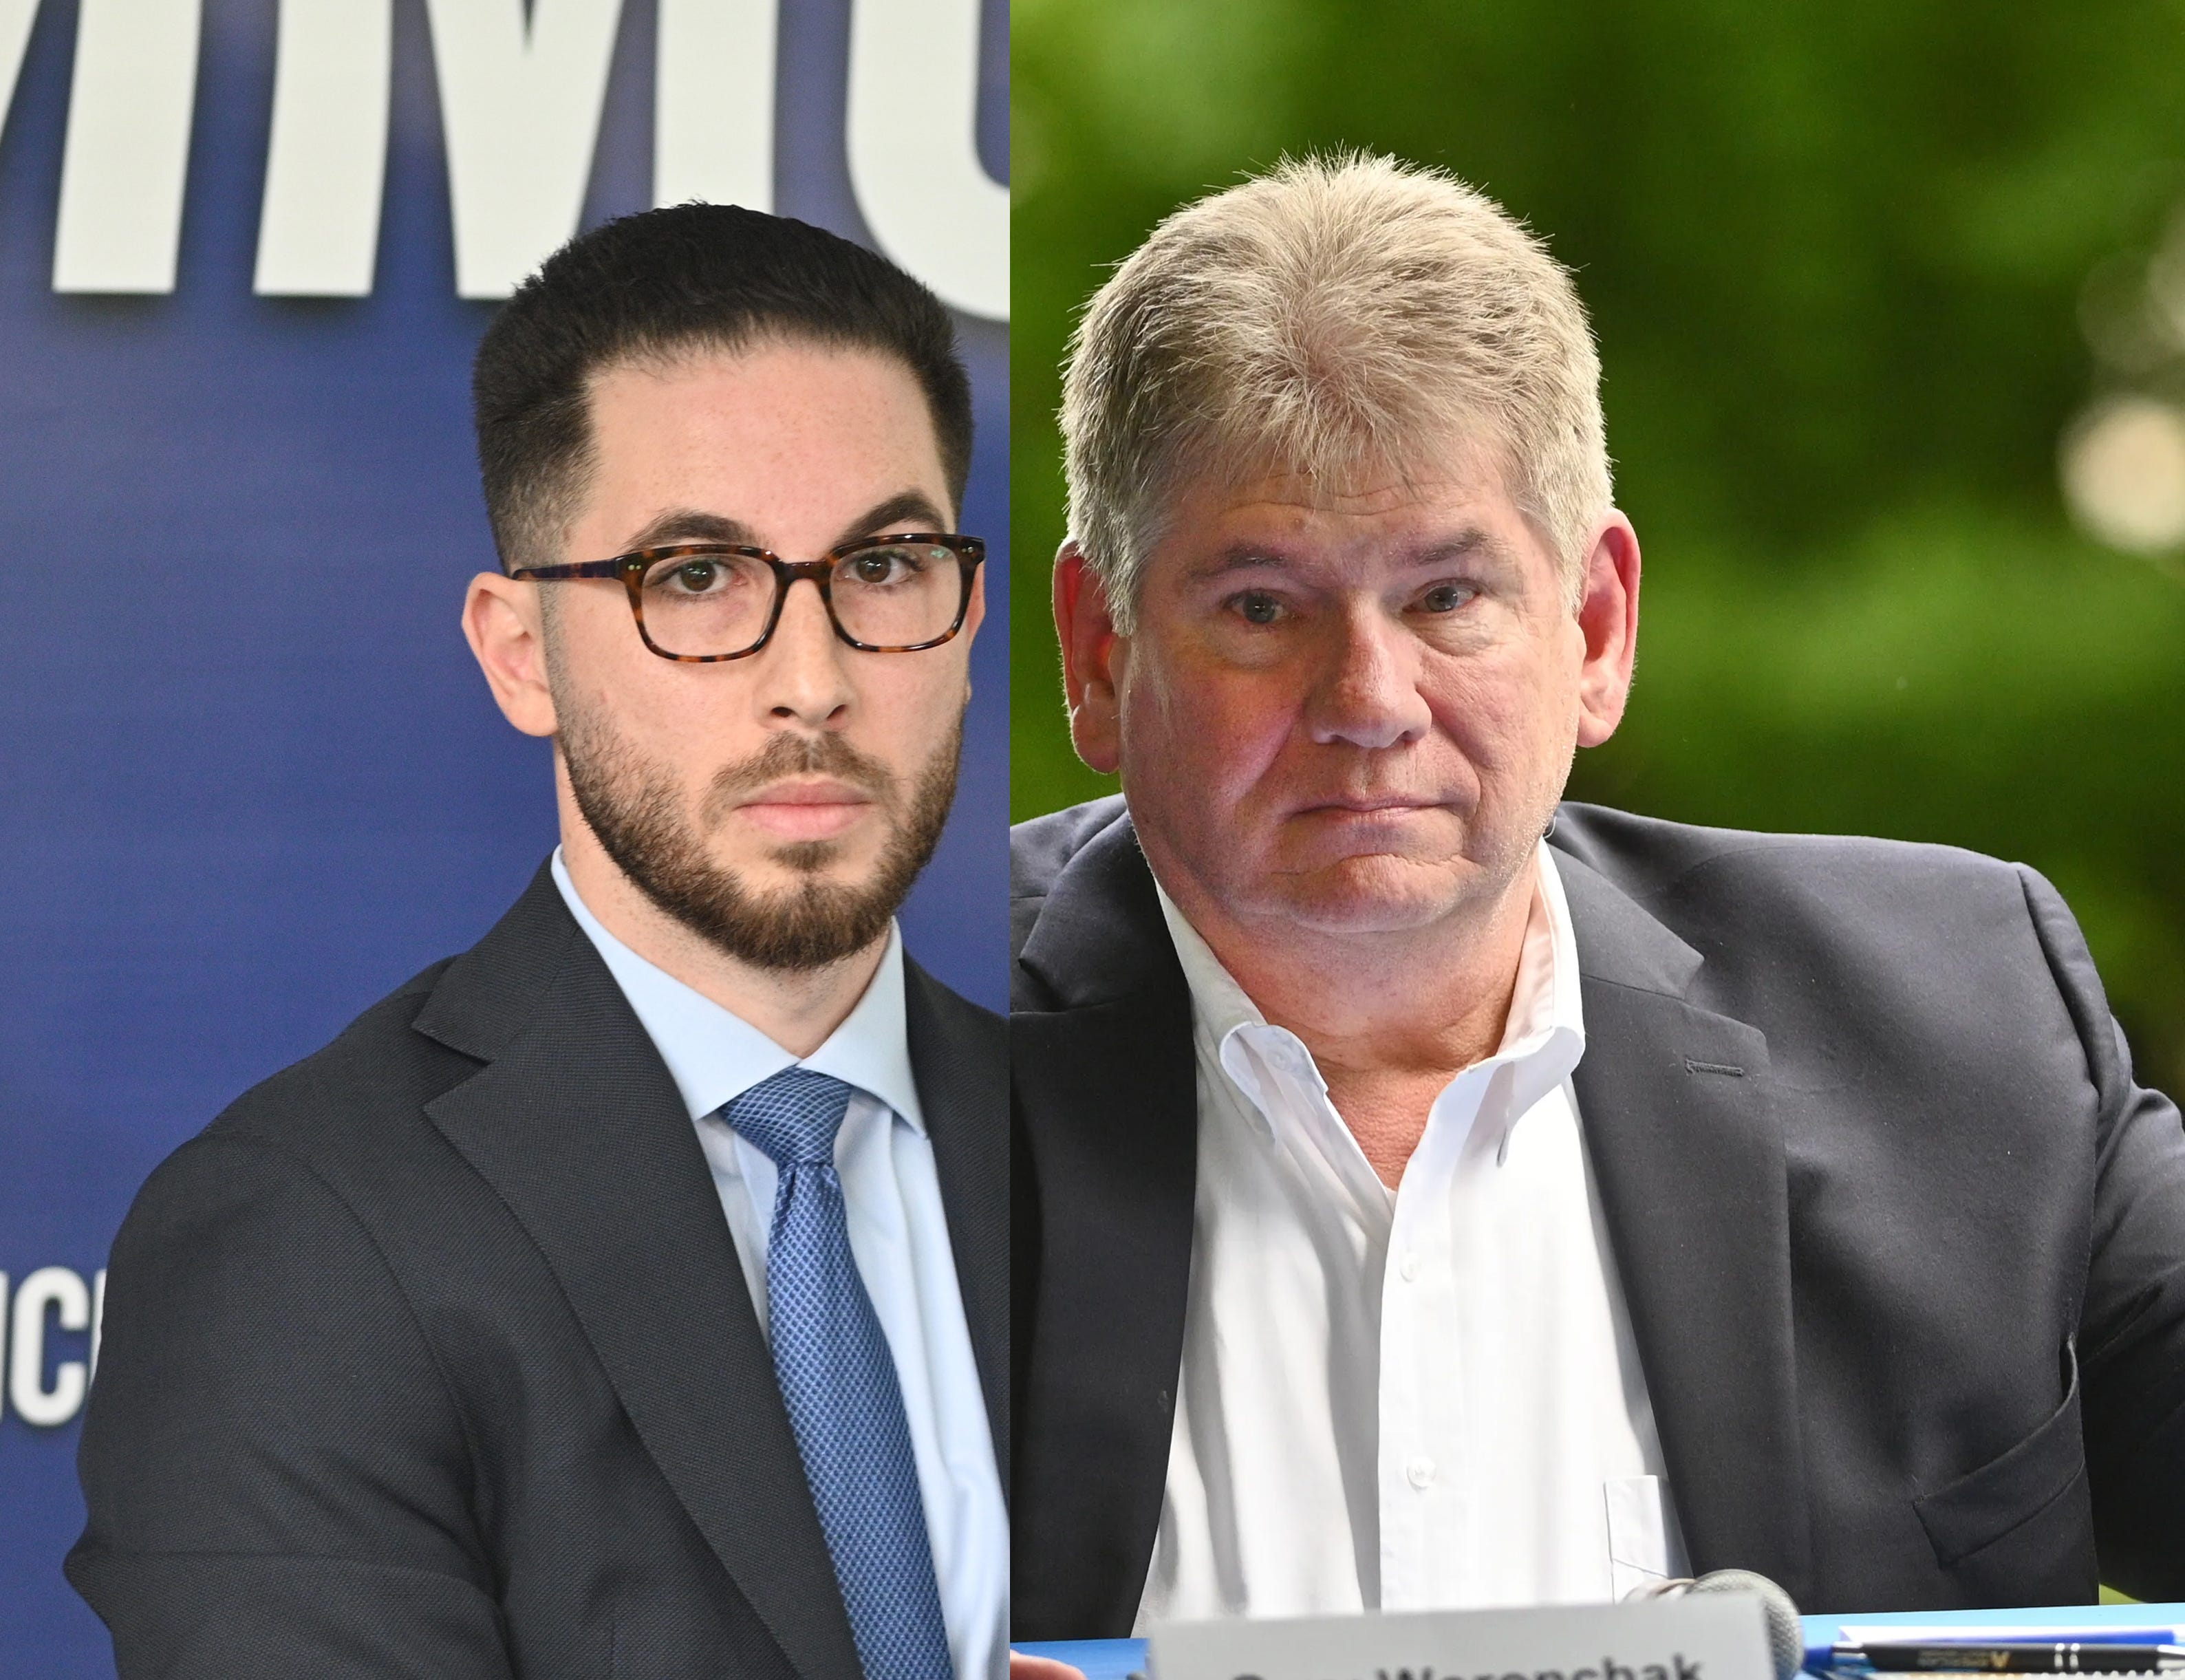 Dearborn mayor's race intensifies over election of city's seventh leader